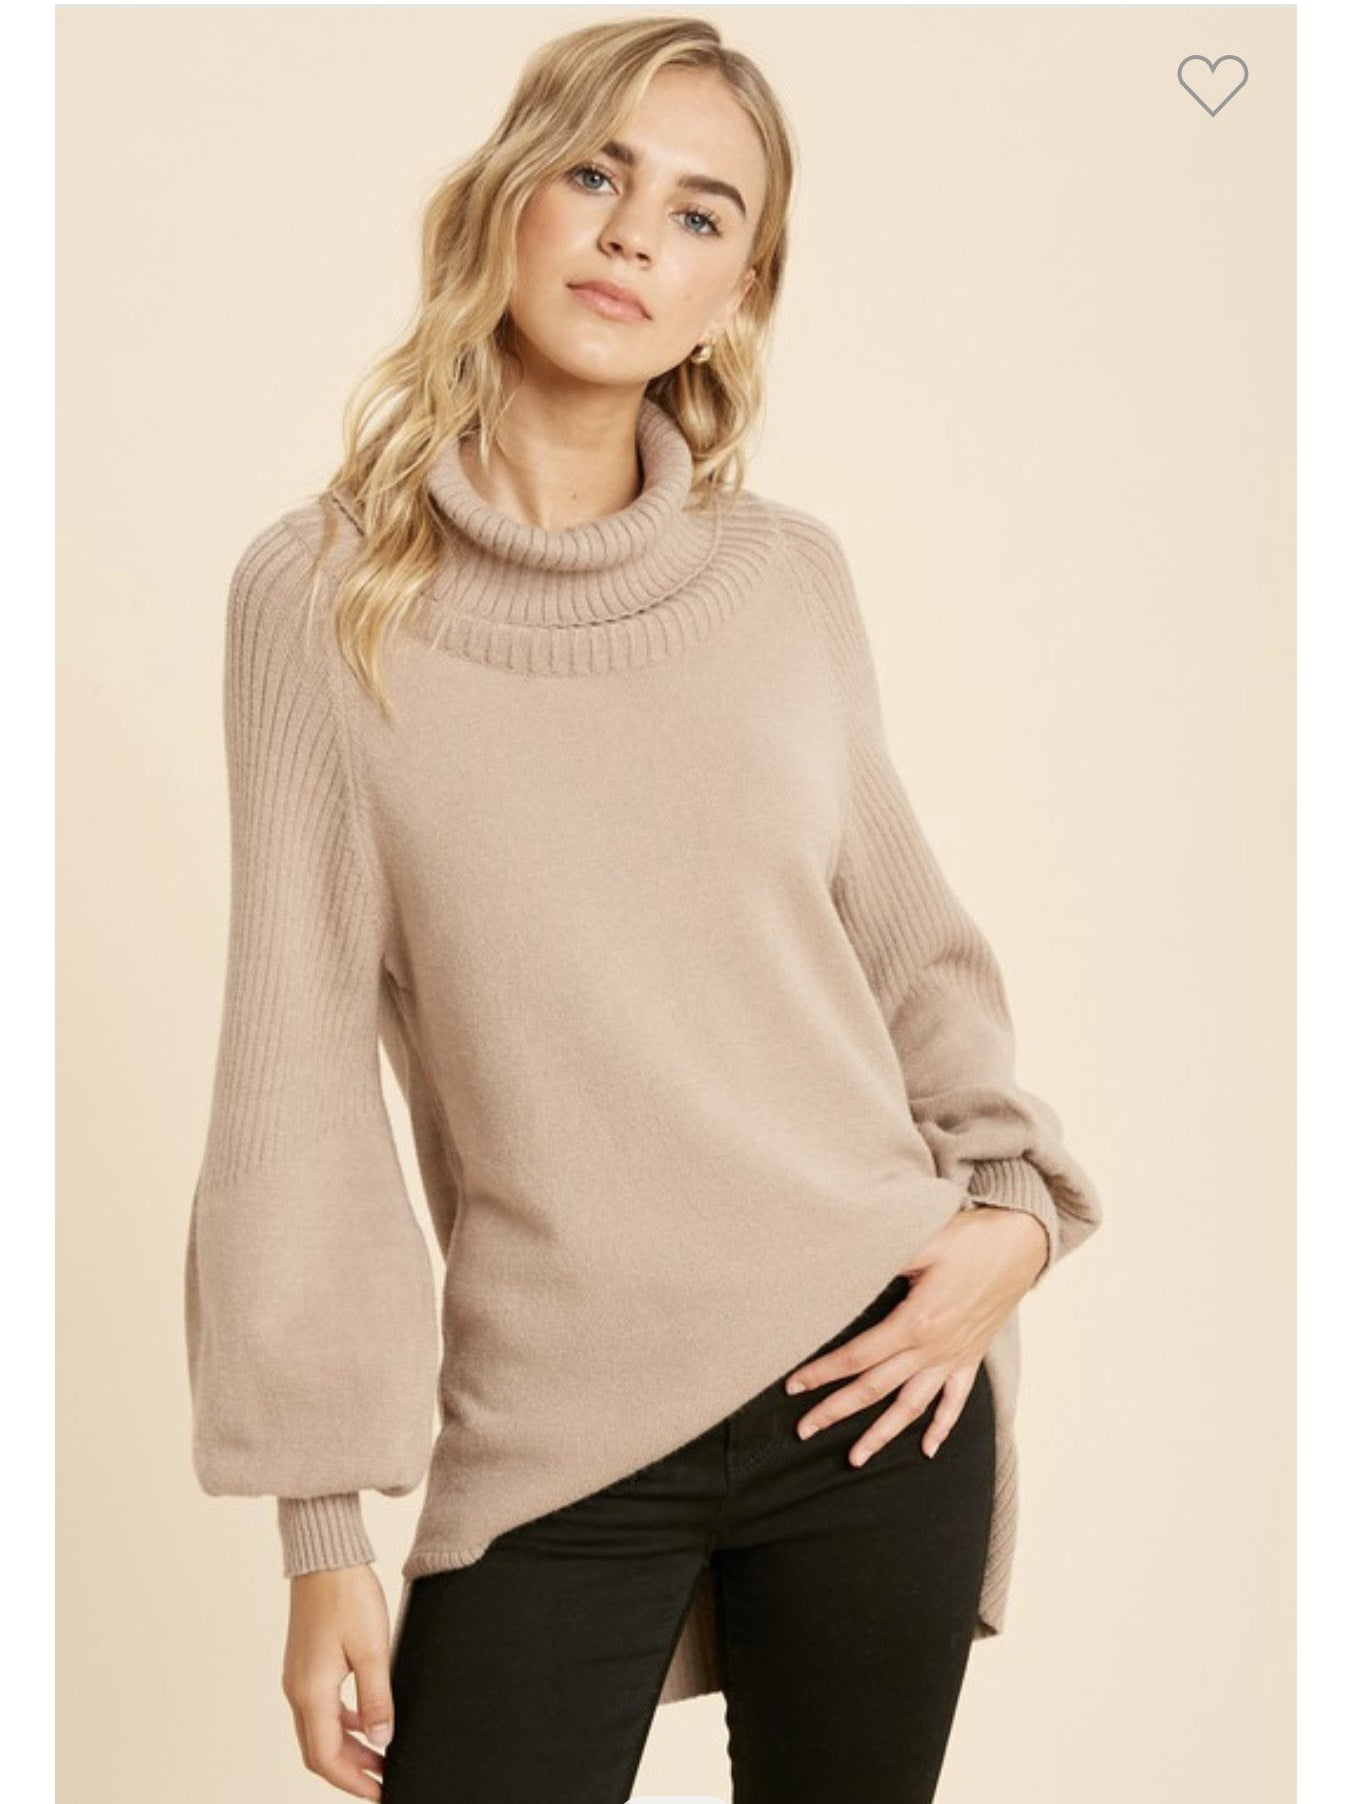 THE TAYLOR TURTLENECK SWEATER